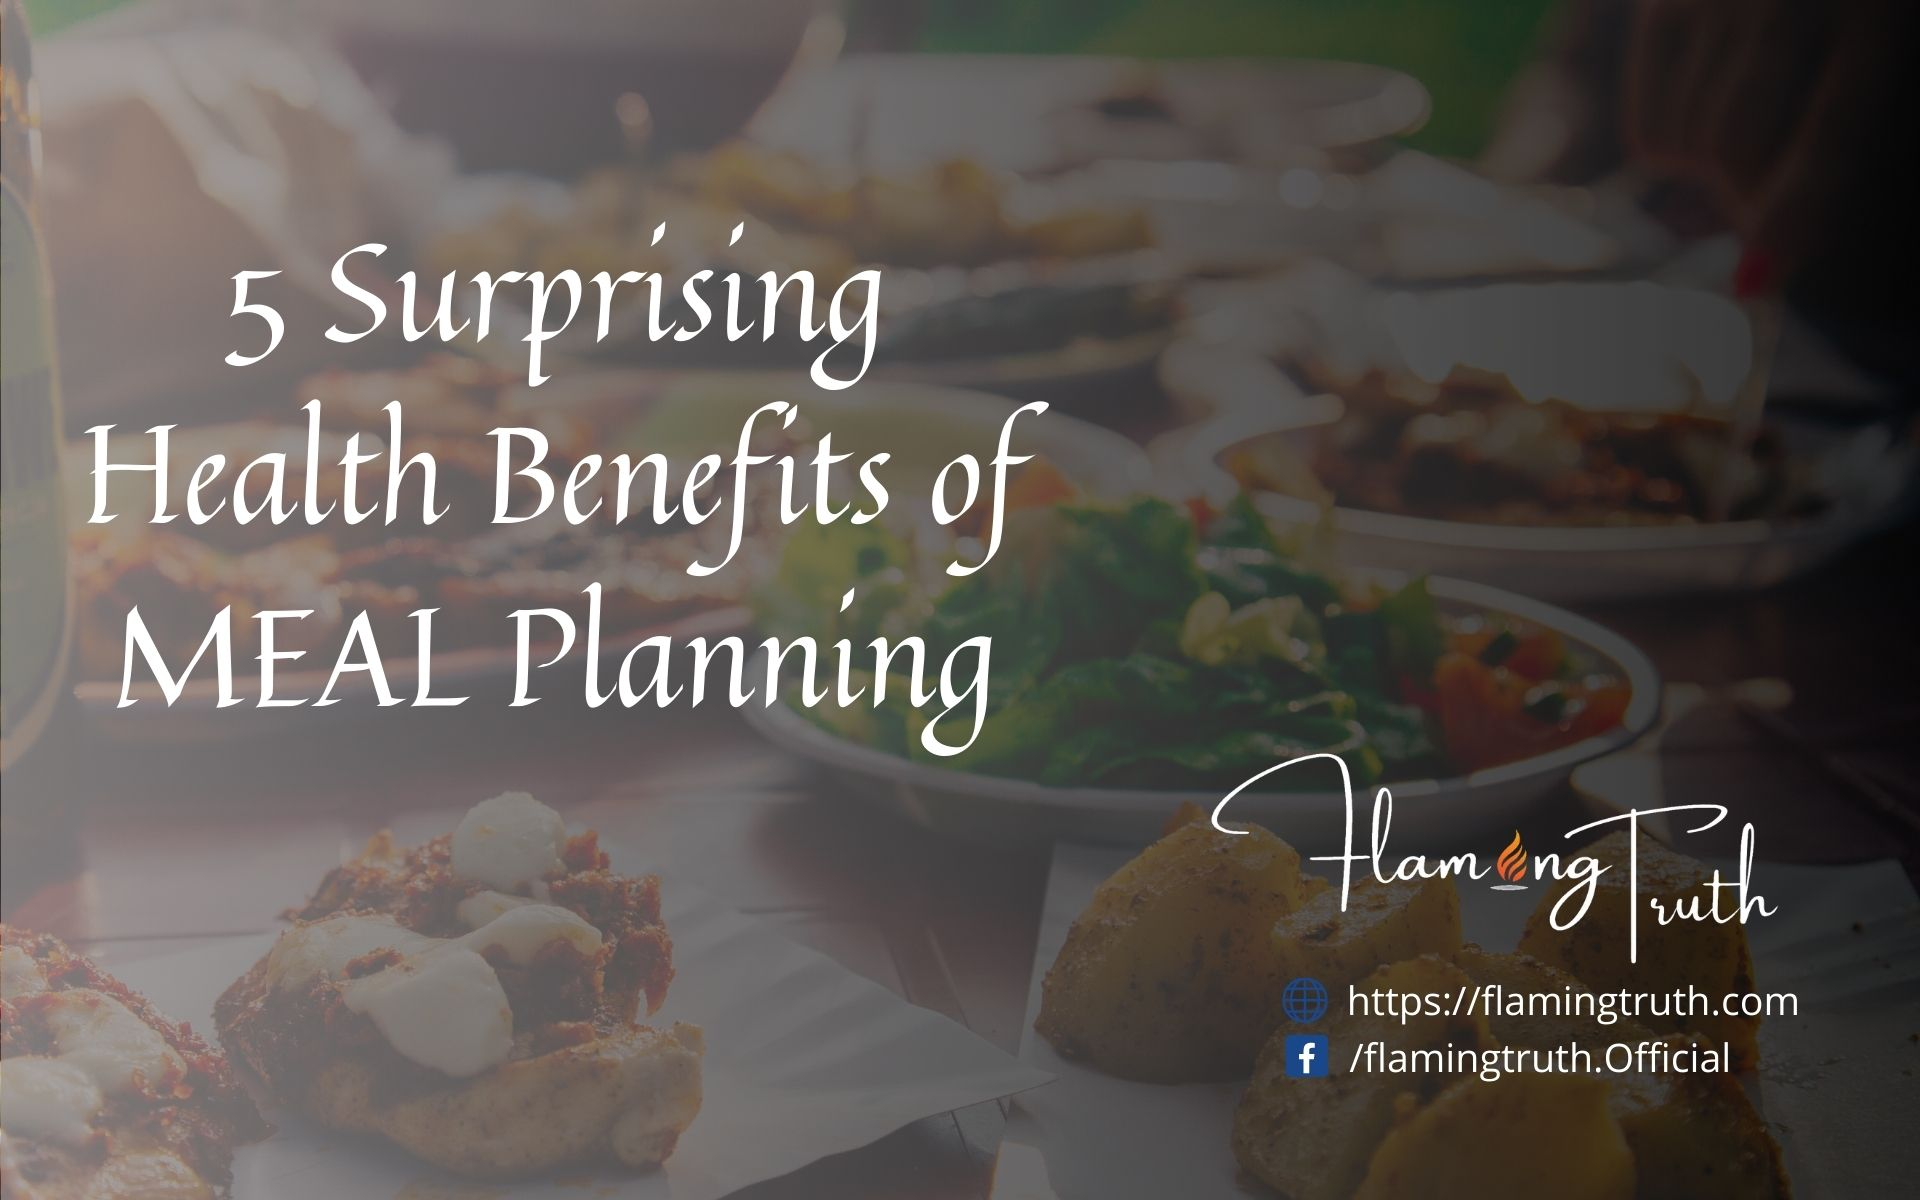 5 Surprising Health Benefits of MEAL Planning-flamingtruth